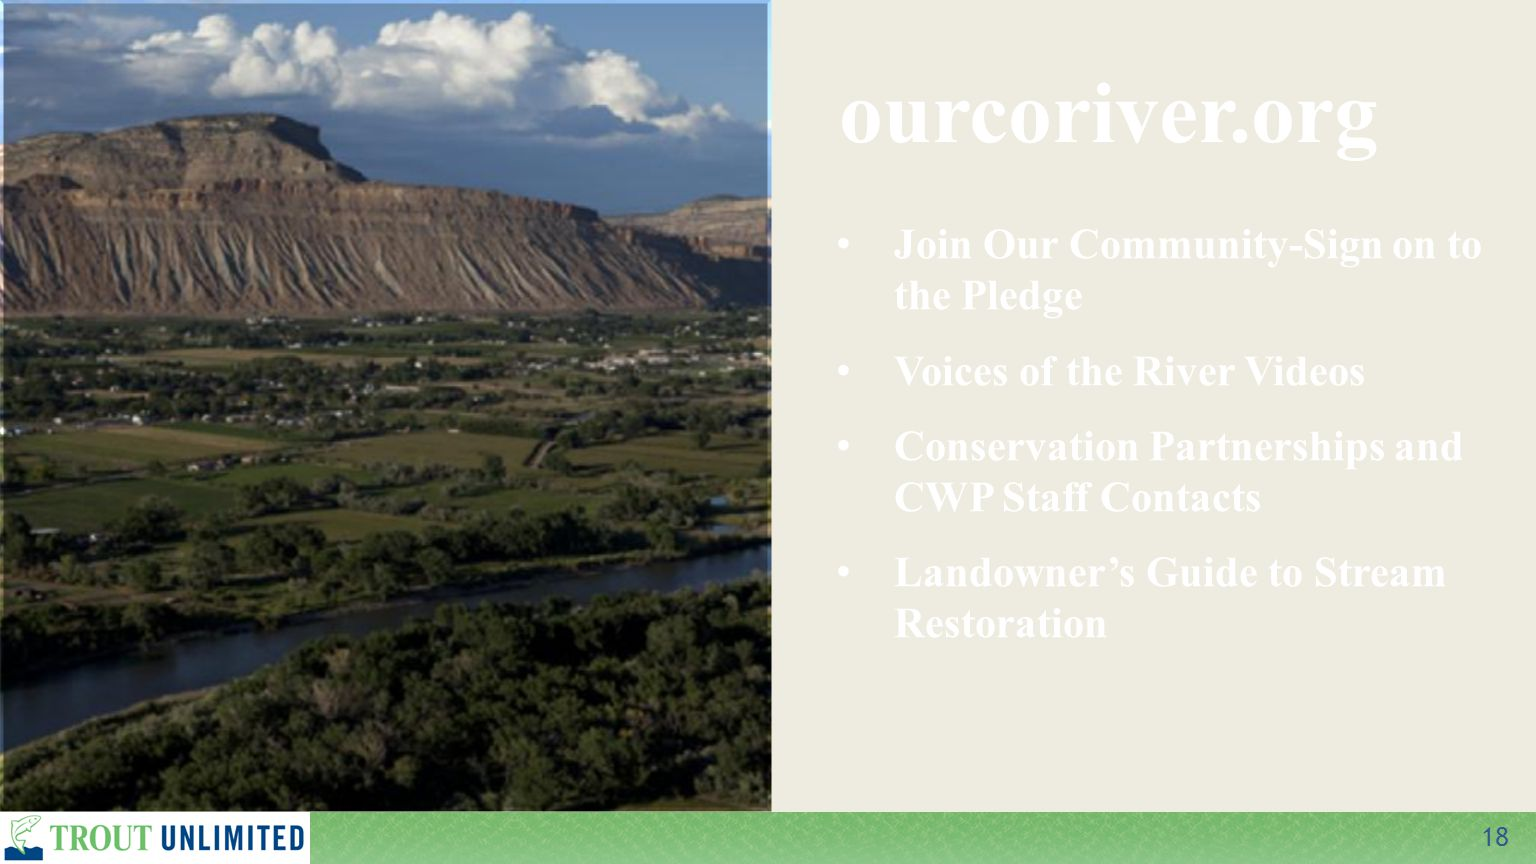 18 ourcoriver.org Join Our Community-Sign on to the Pledge Voices of the River Videos Conservation Partnerships and CWP Staff Contacts Landowner's Guide to Stream Restoration